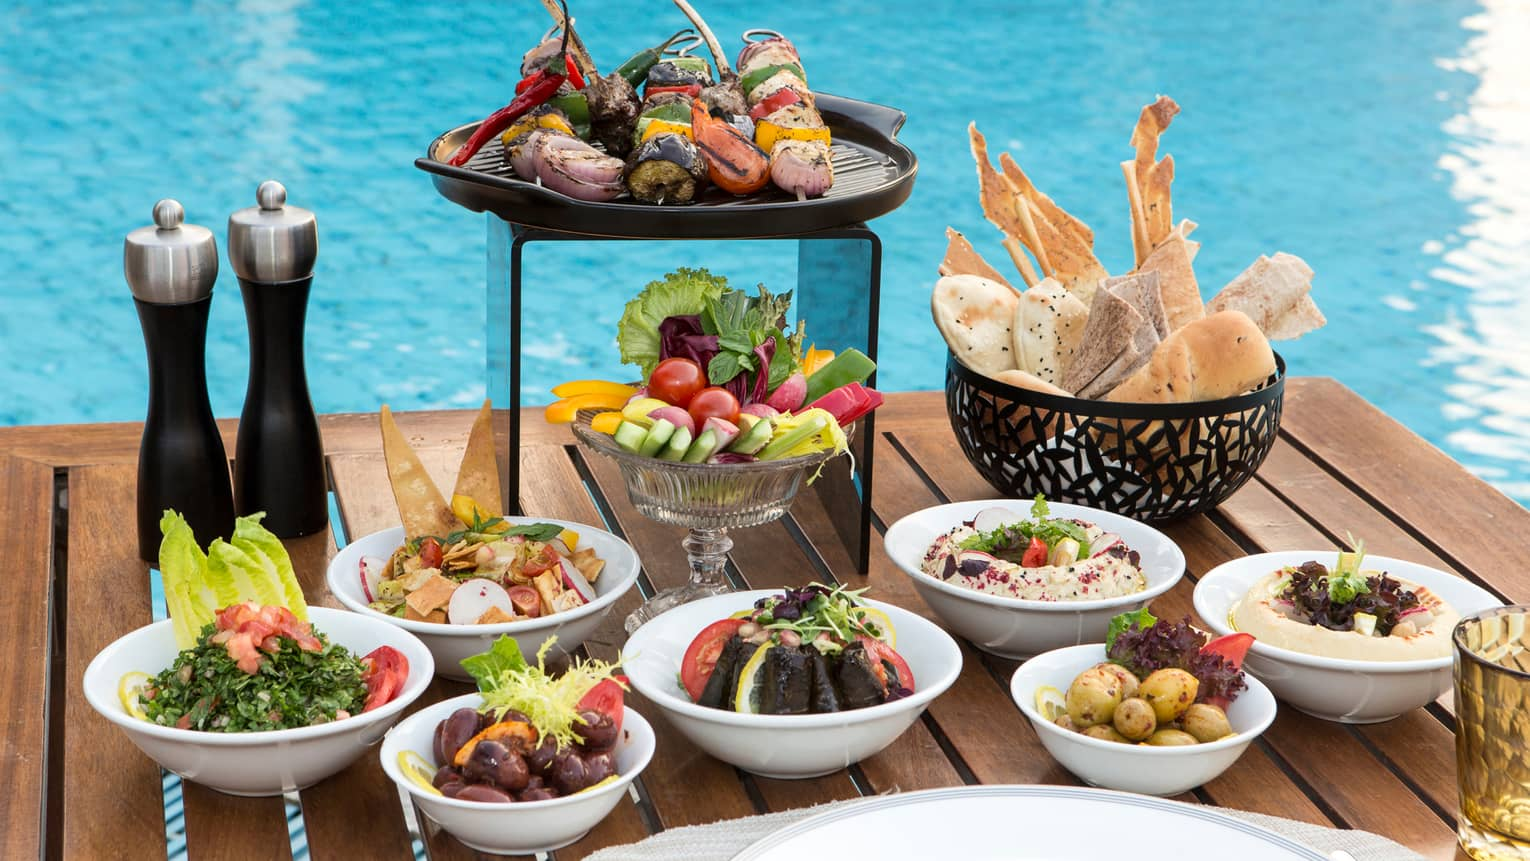 Small bowls of mezze appetizers, like olives, fresh bread, kebabs, on table in front of swimming pool